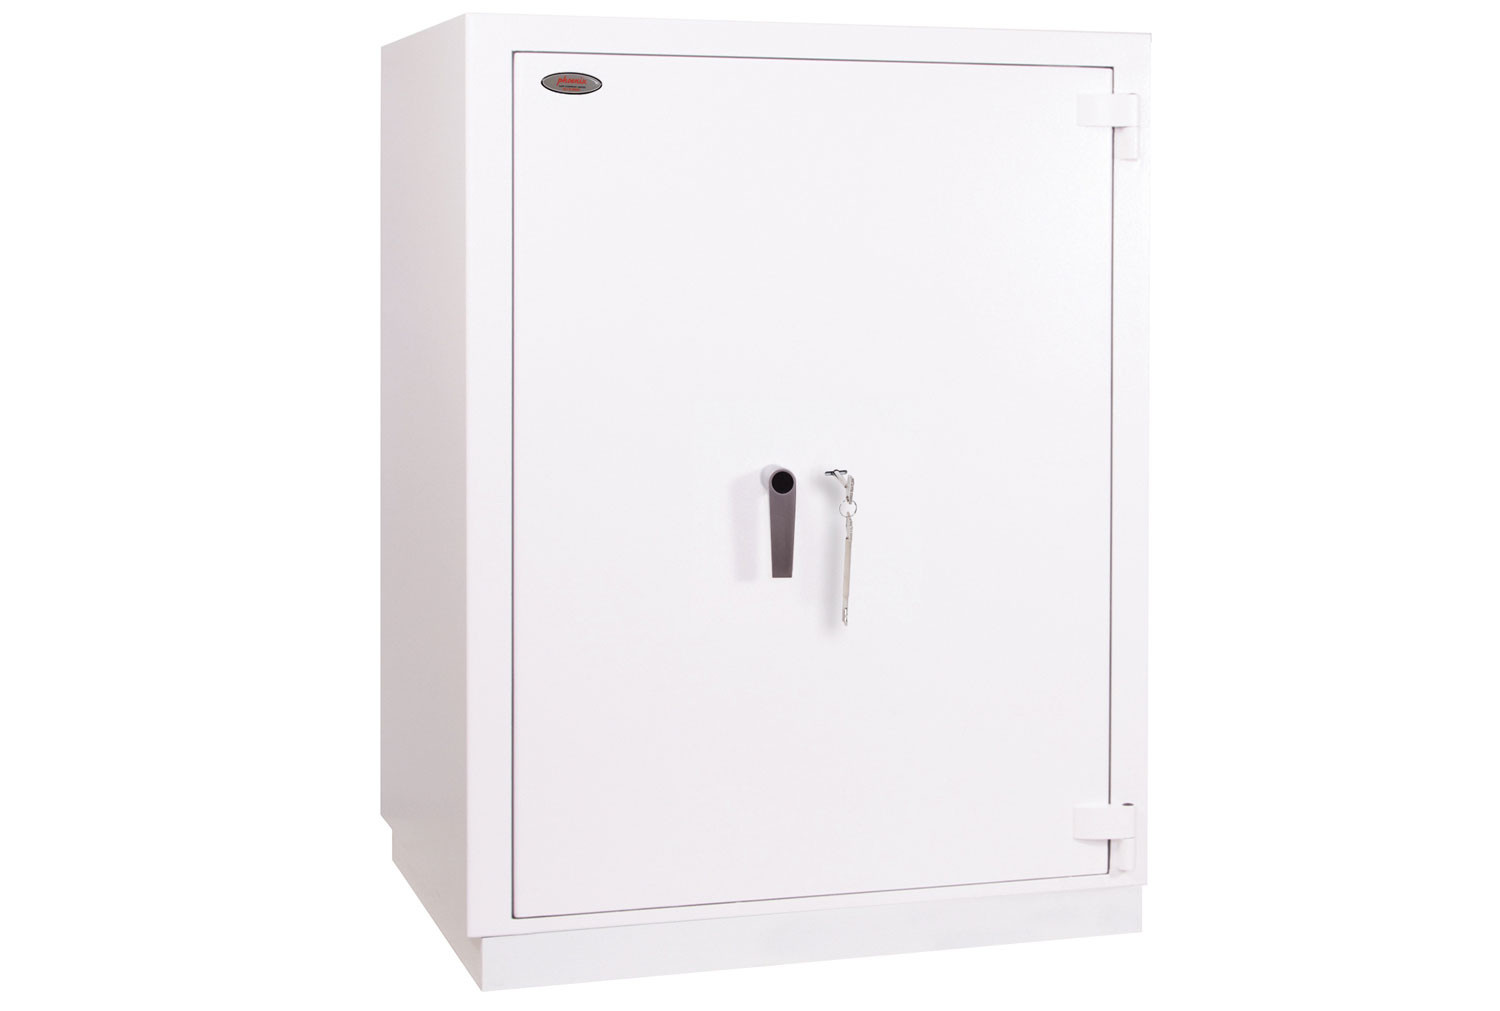 Phoenix Millenium Duplex DS4651K Data Safe With Key Lock (234ltrs)